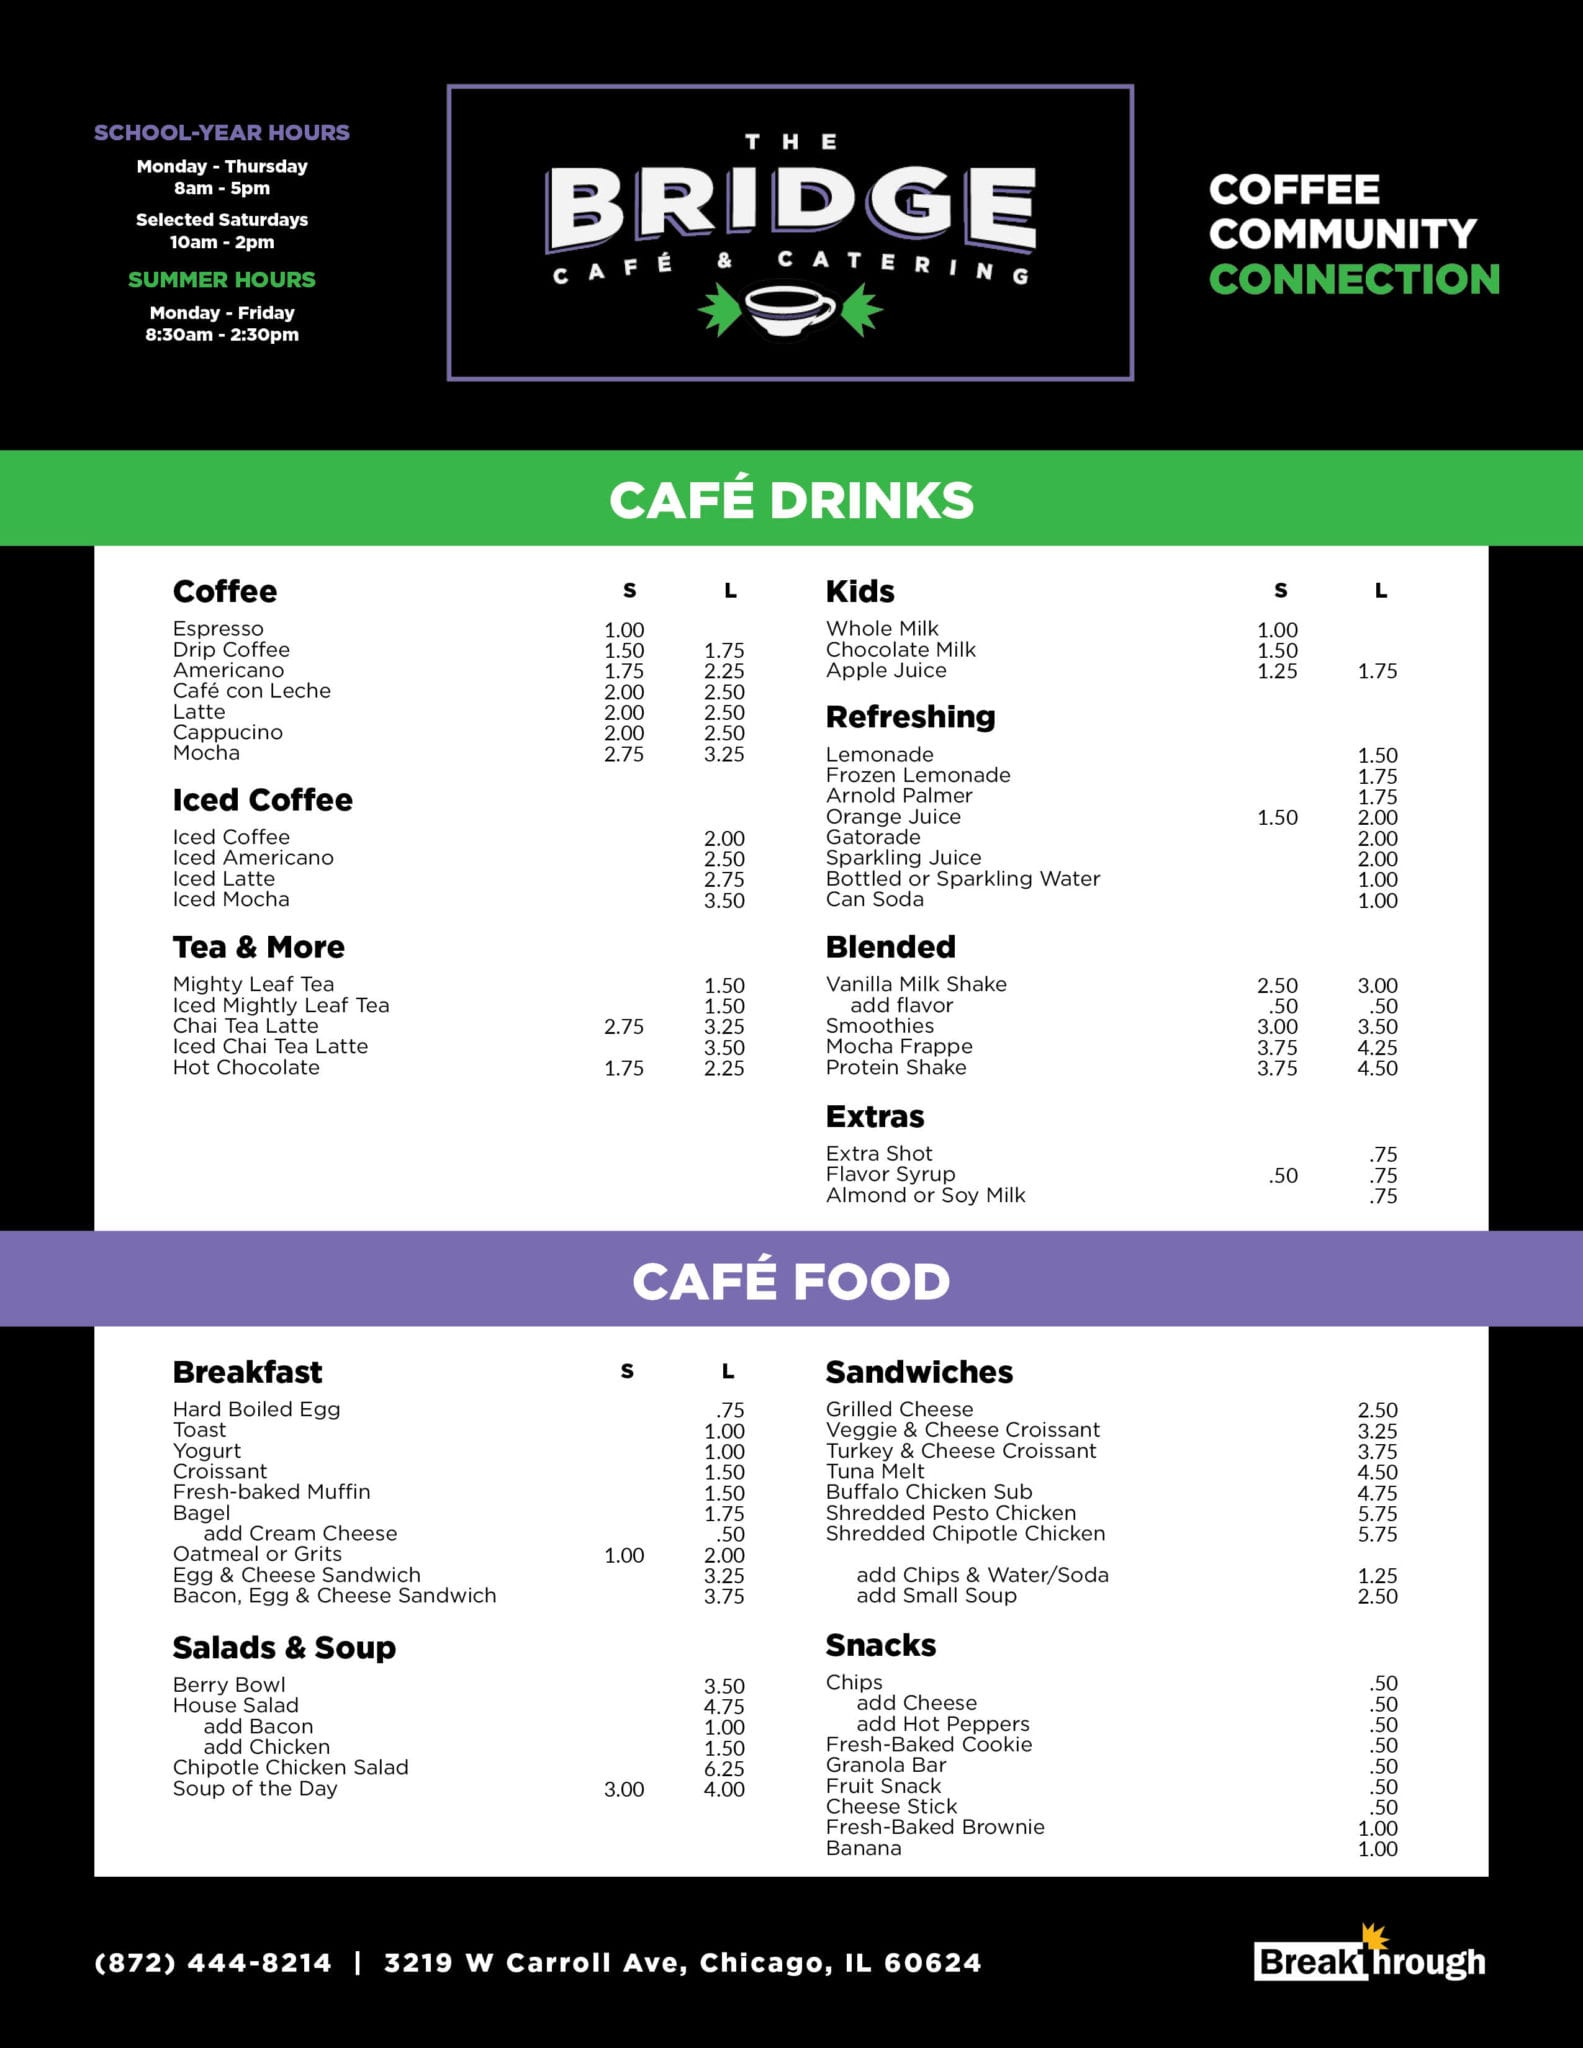 The Bridge Cafe & Catering 1